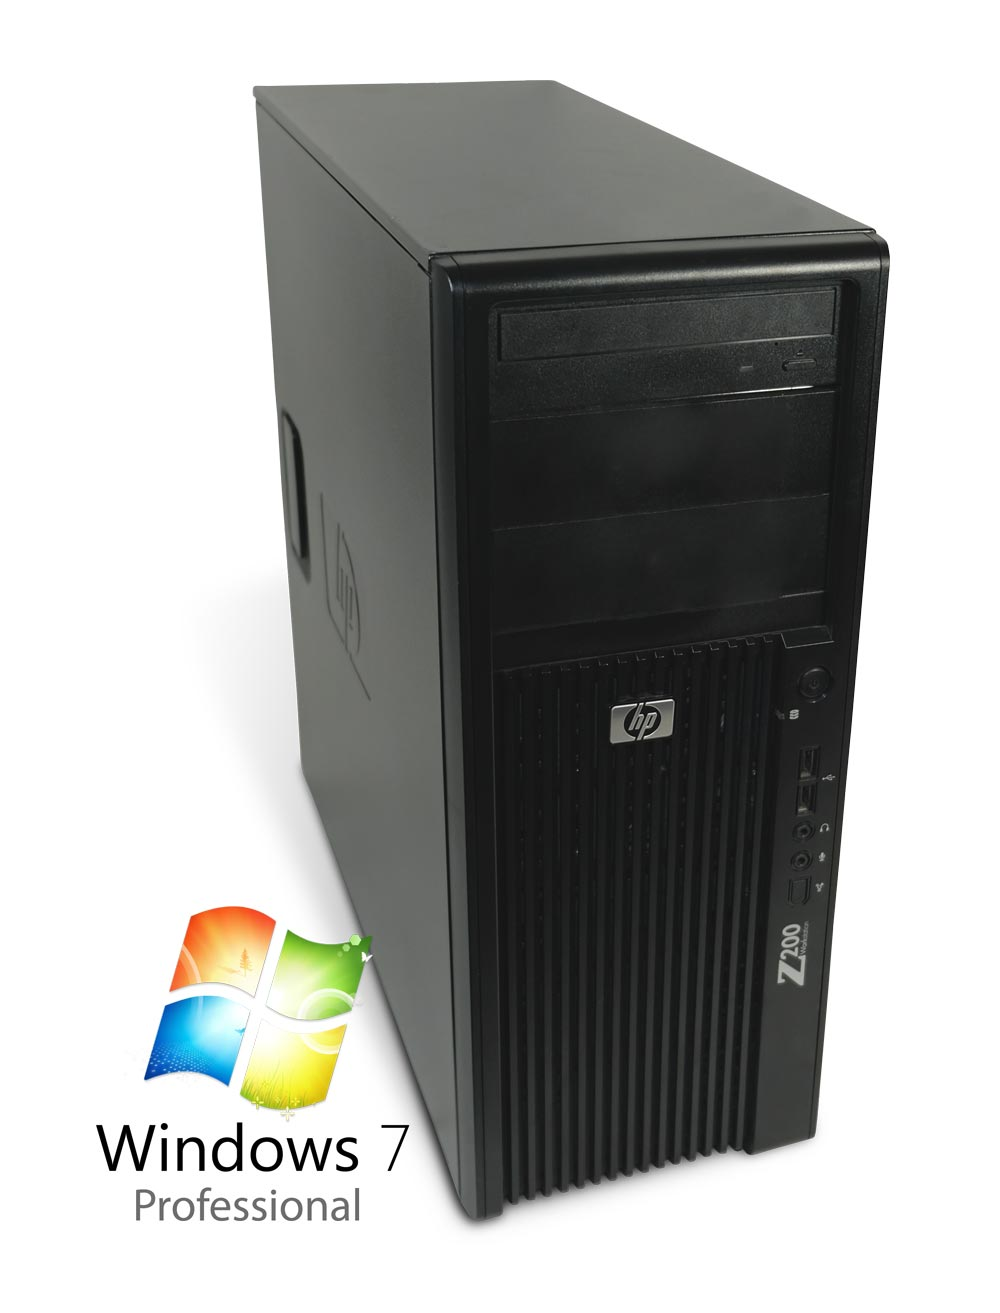 gebraucht pc computer hp z200 workstation core i7 4x 2. Black Bedroom Furniture Sets. Home Design Ideas